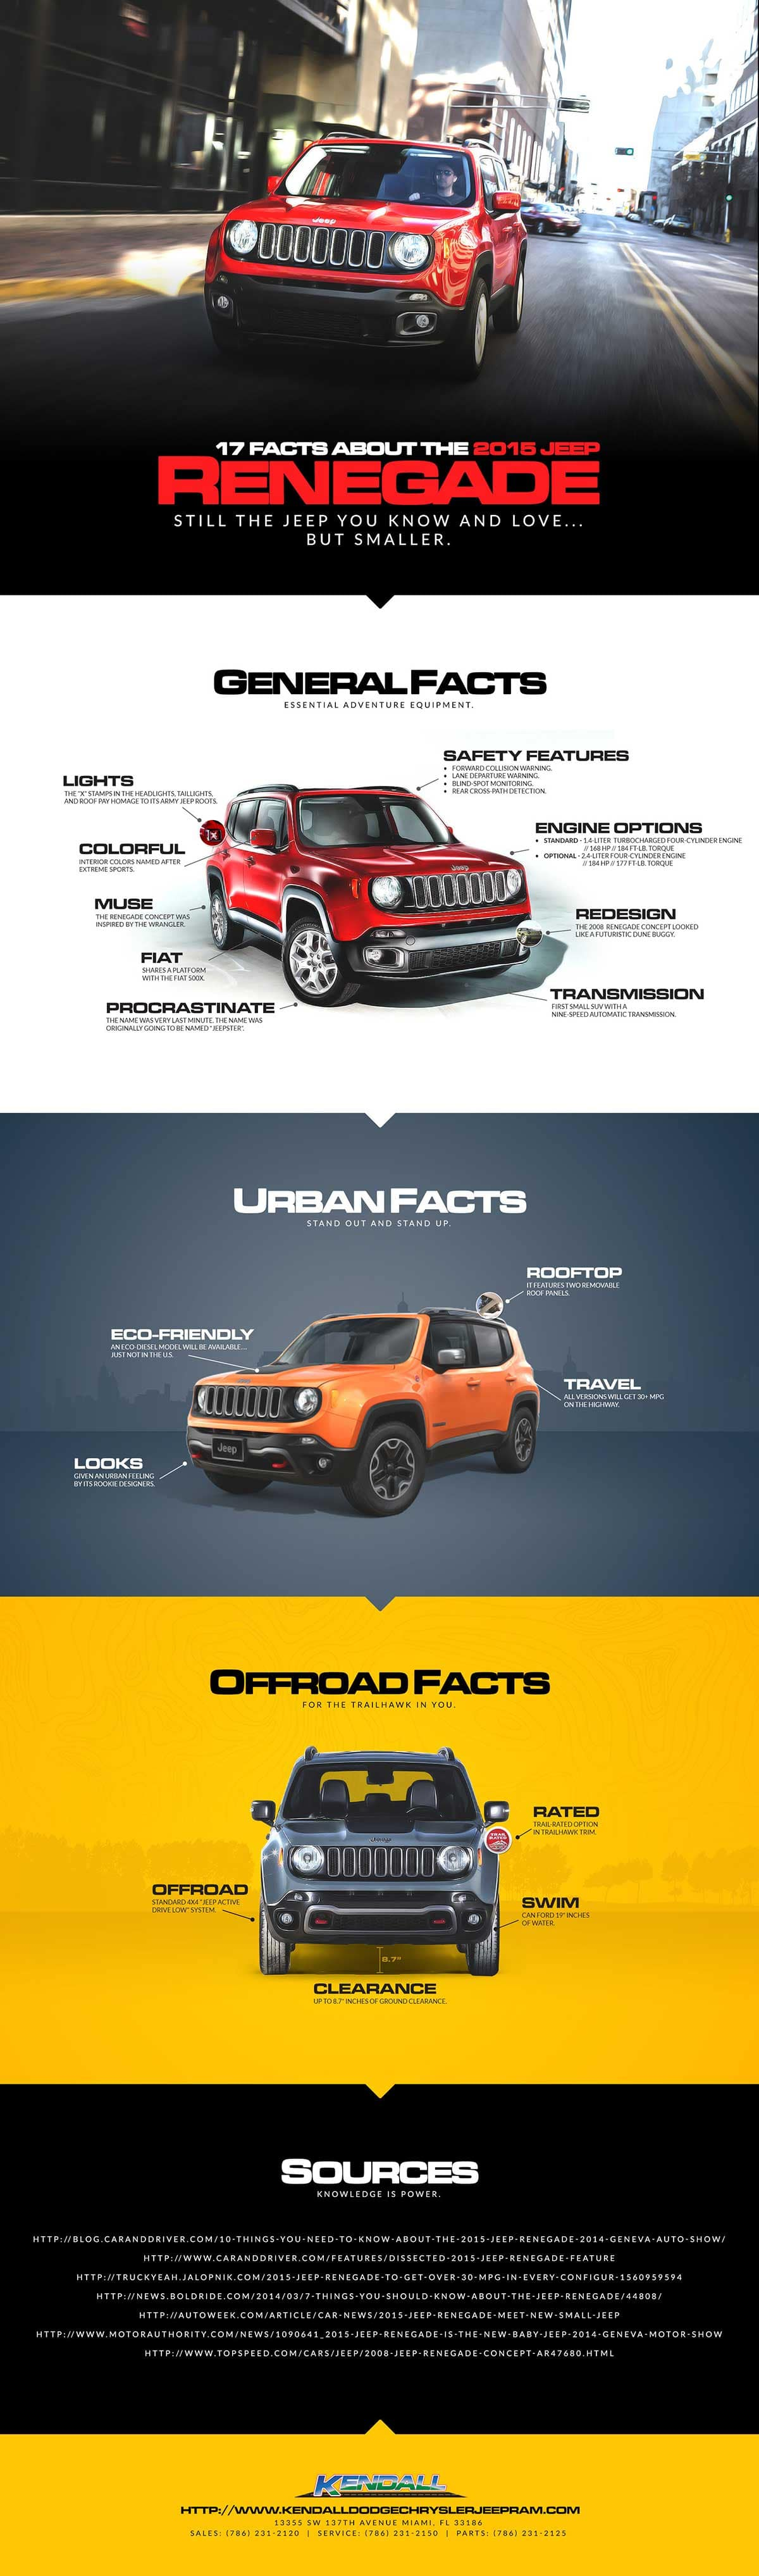 17 Facts about 2015 Jeep Renegade